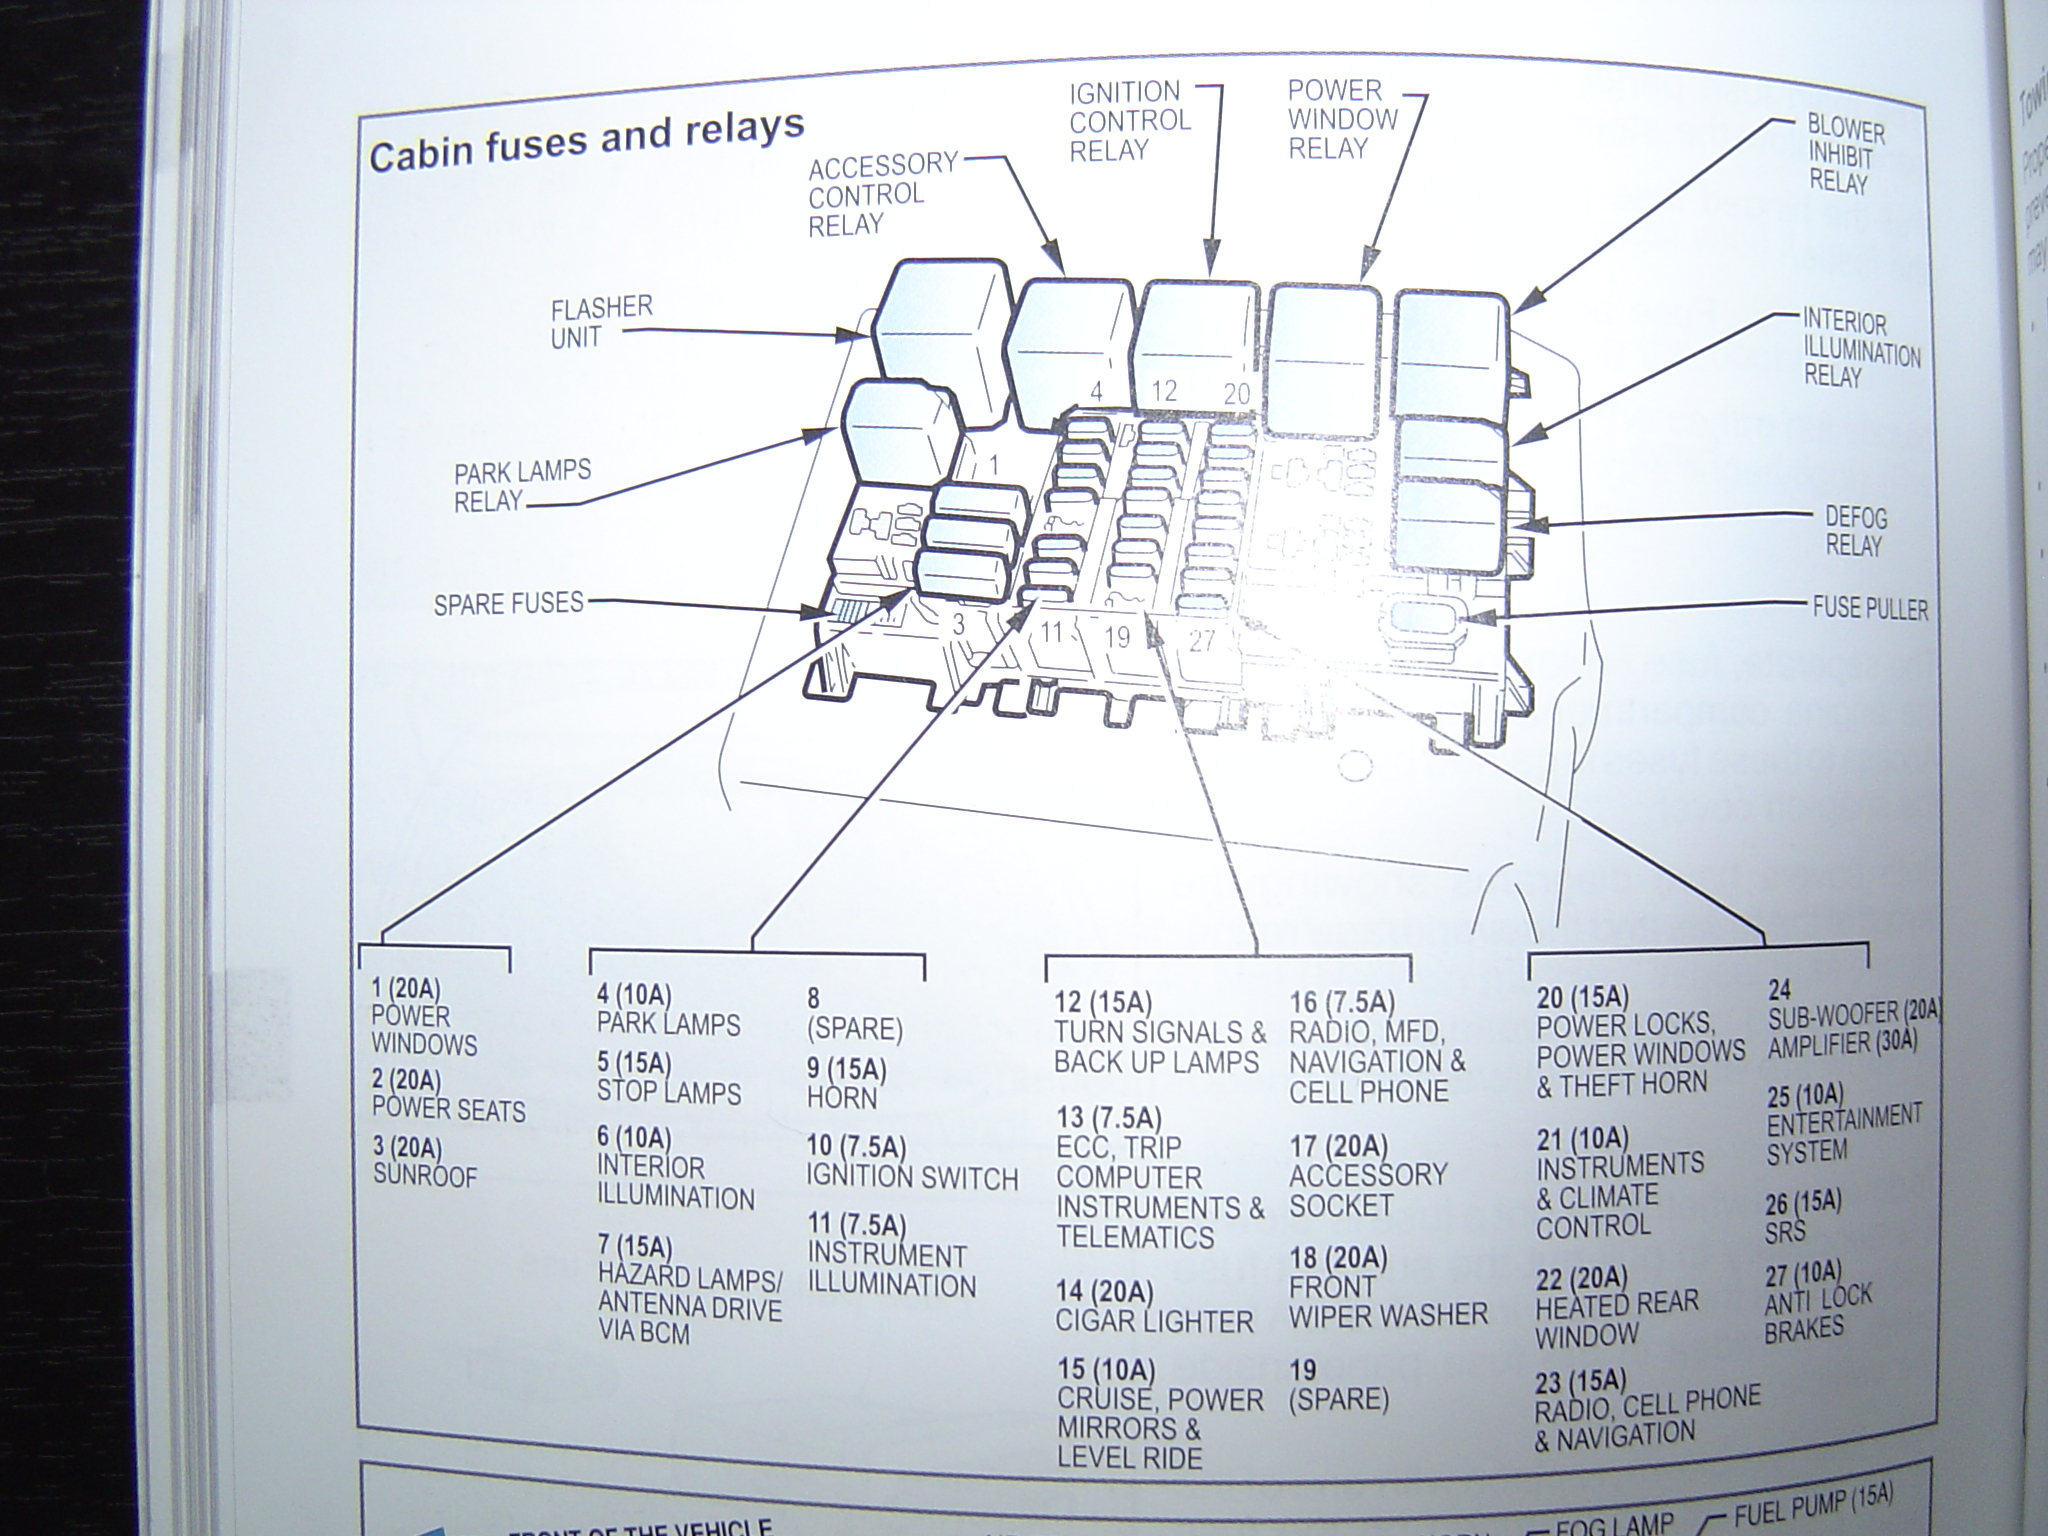 VY_CABIN_FUSEBOX cabin fuse box diagrams ba bf vx vy vz ve ba fuse box at reclaimingppi.co